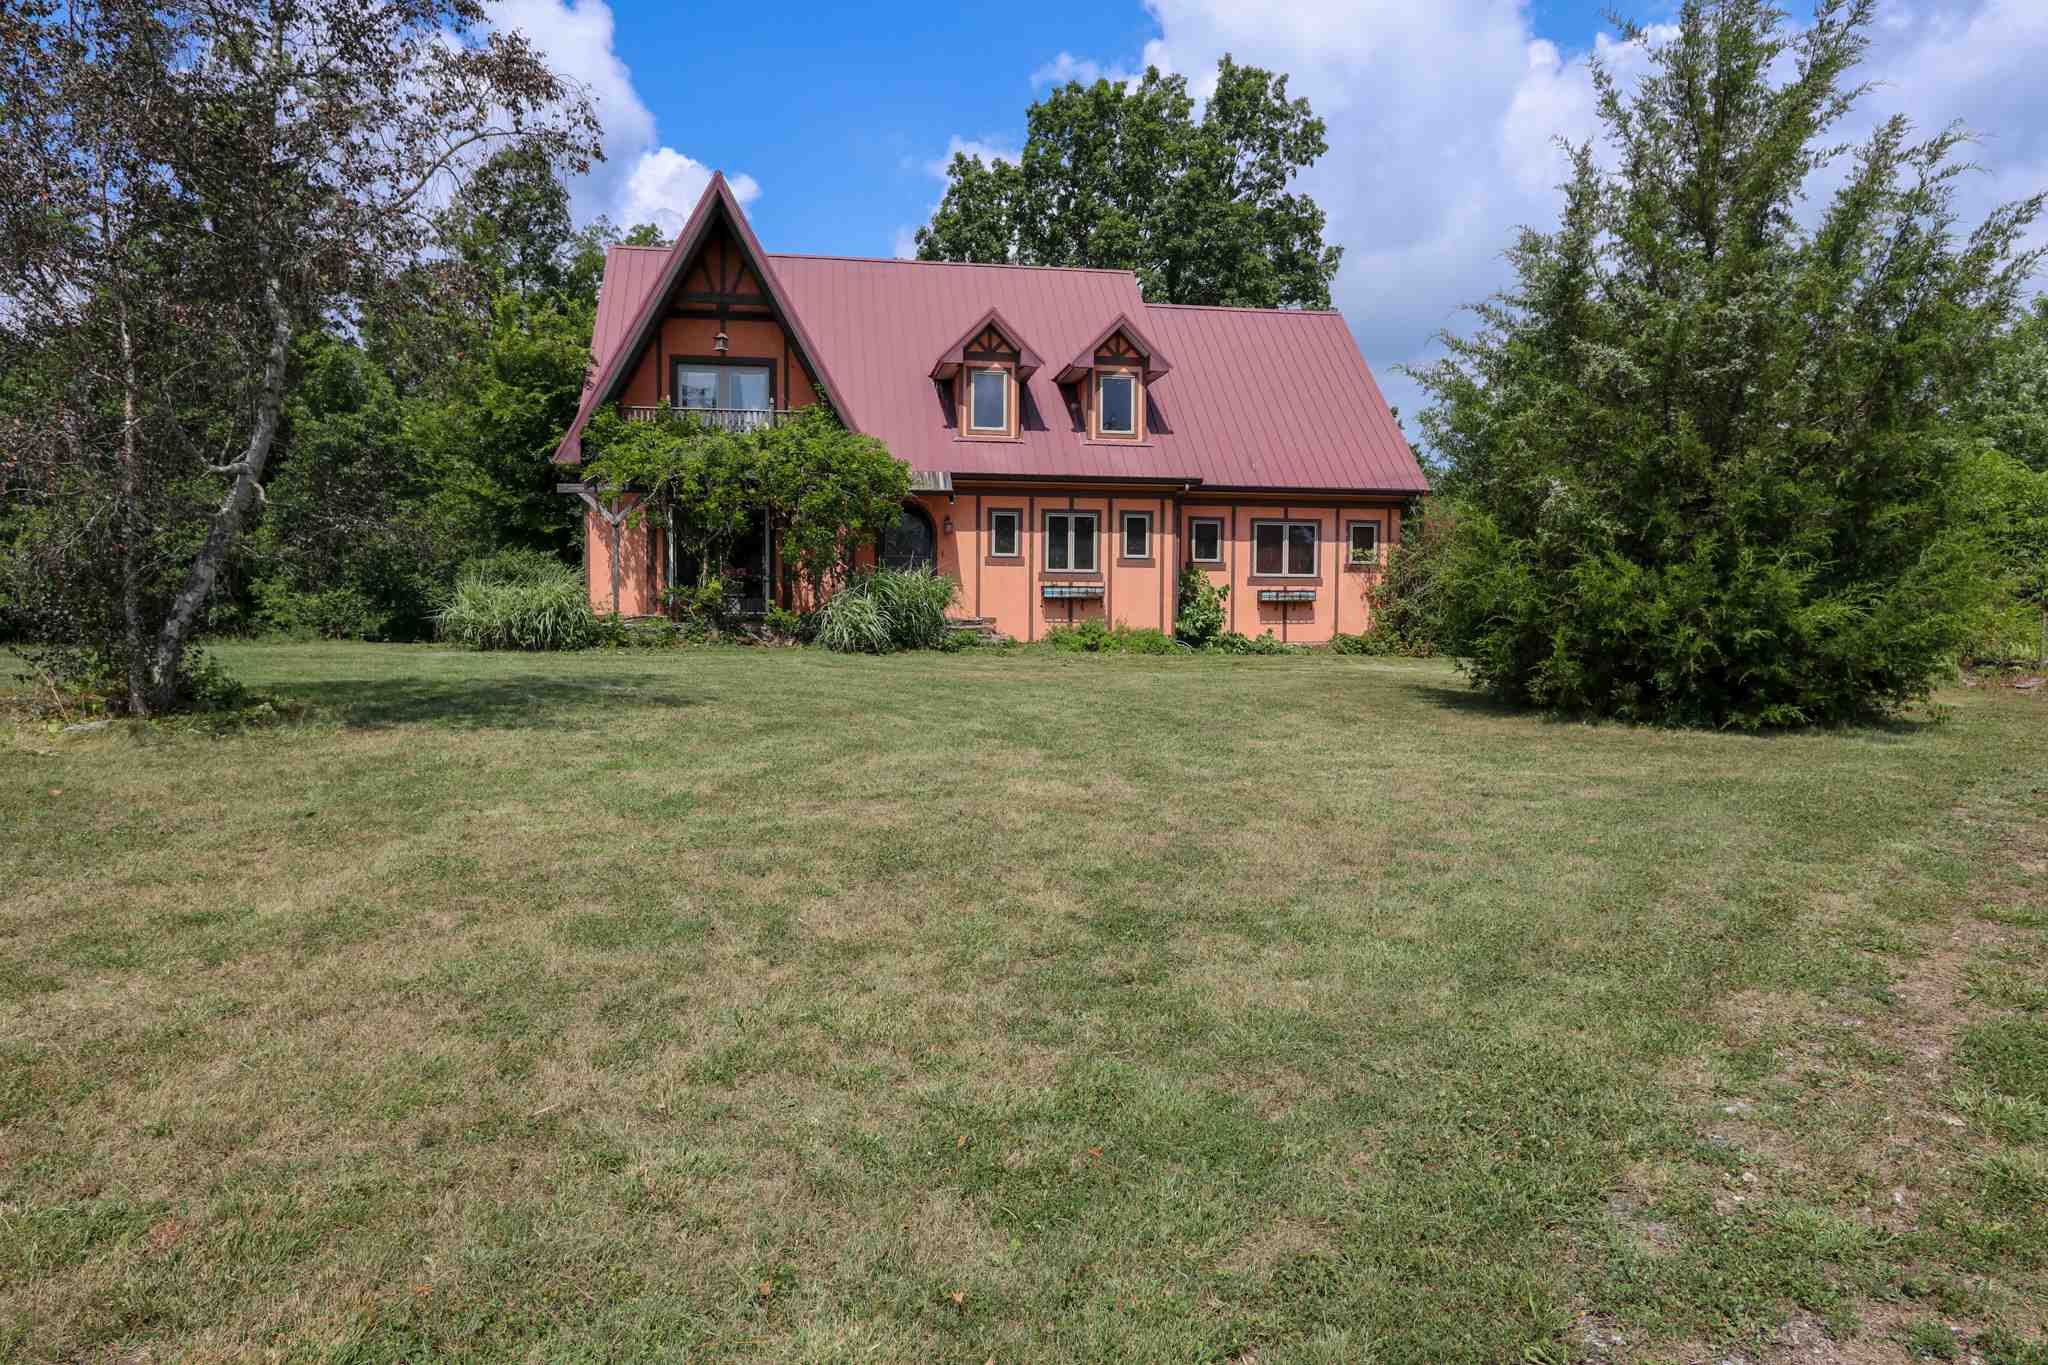 Photo 1 for 1000 Perkins Rd Dry Ridge, KY 41035